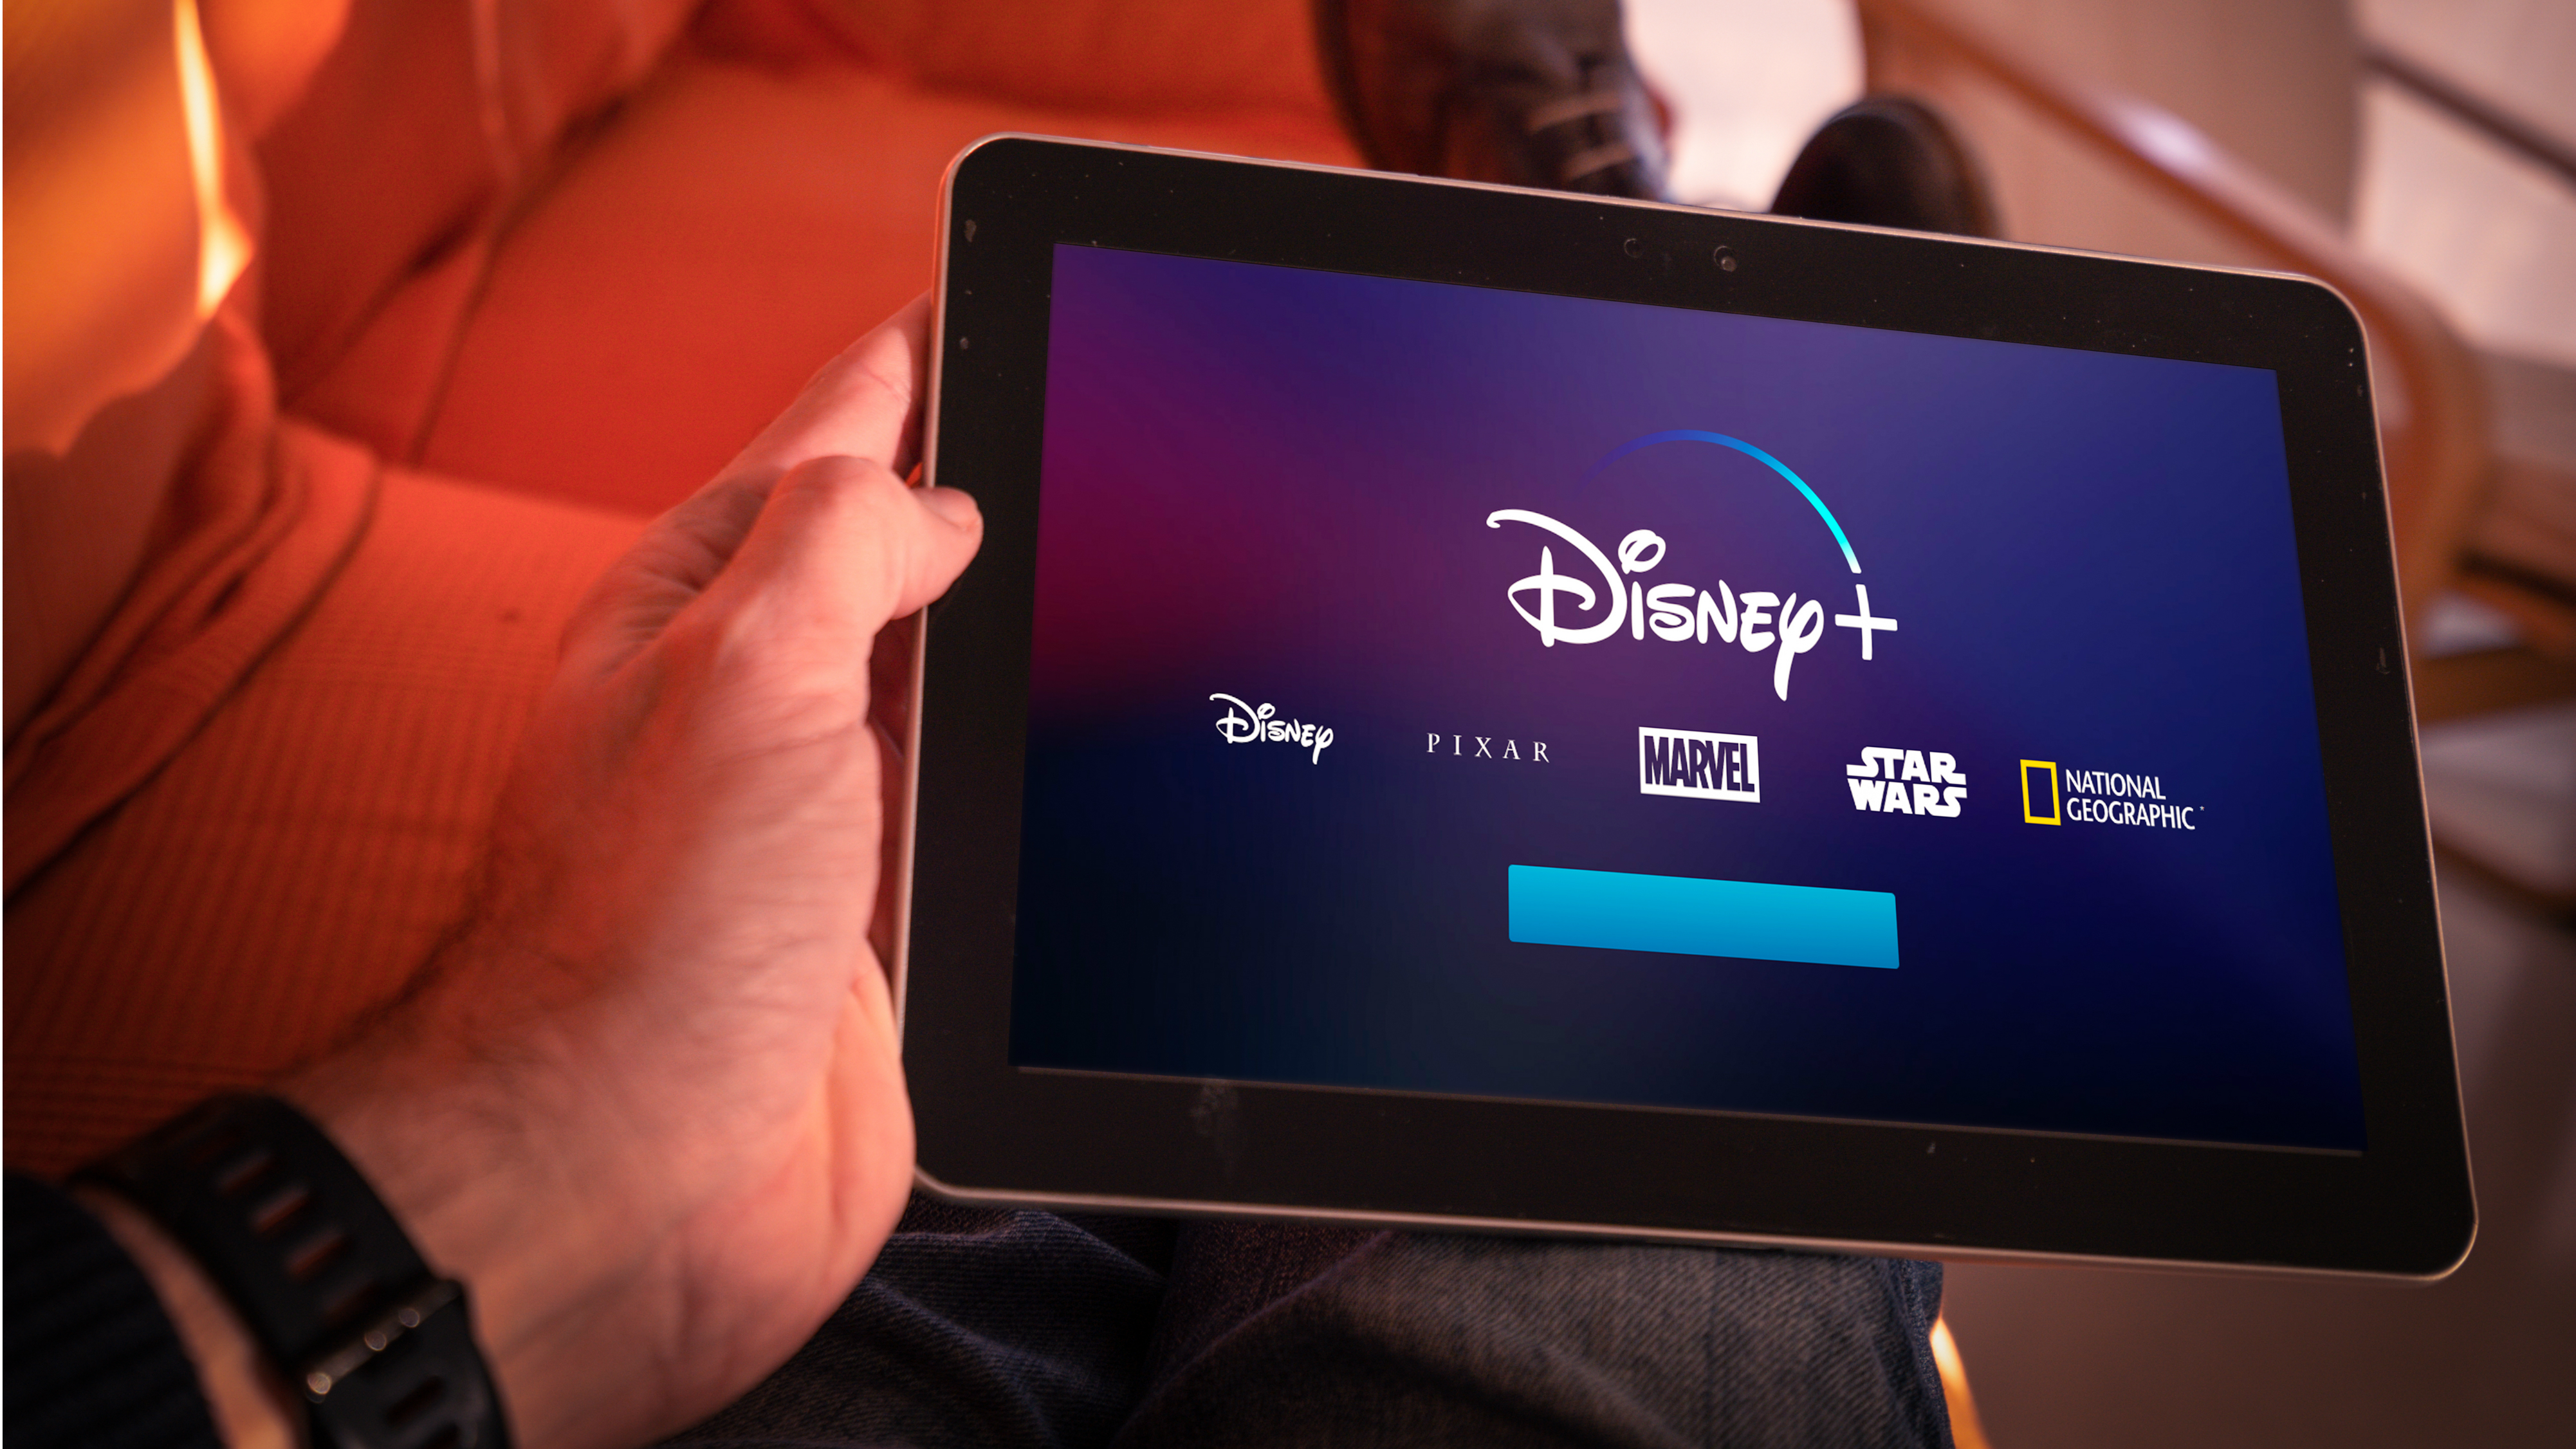 Verizon Fios deal: get one year of Disney Plus for free plus a $50 gift card